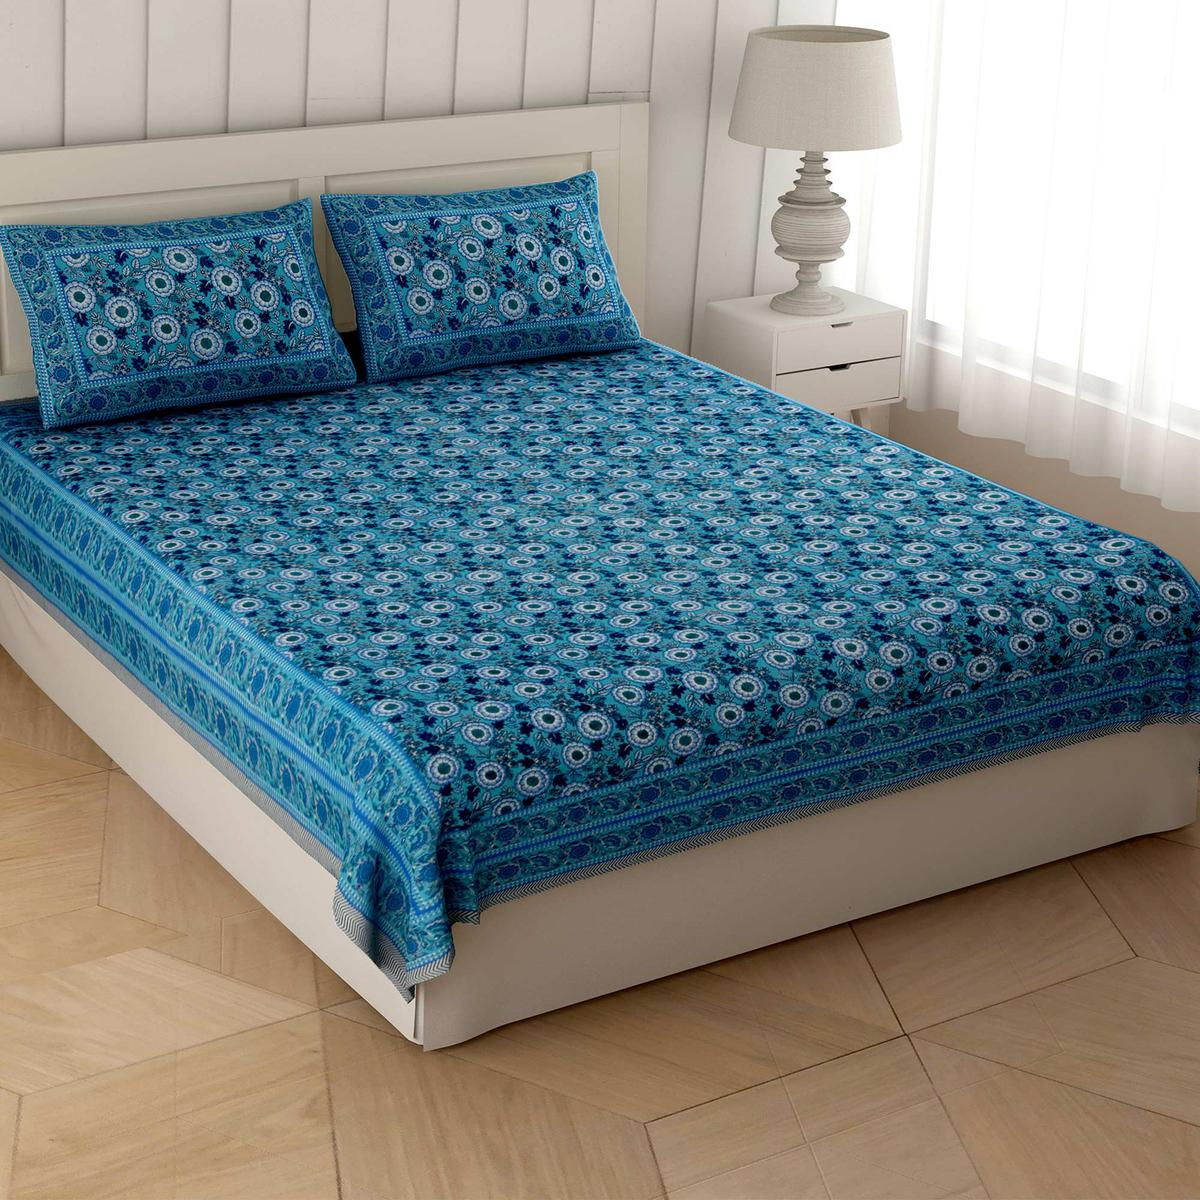 Elegant Blue Colored Majestic Motif Cotton Double Bedsheet With Pillow Cover